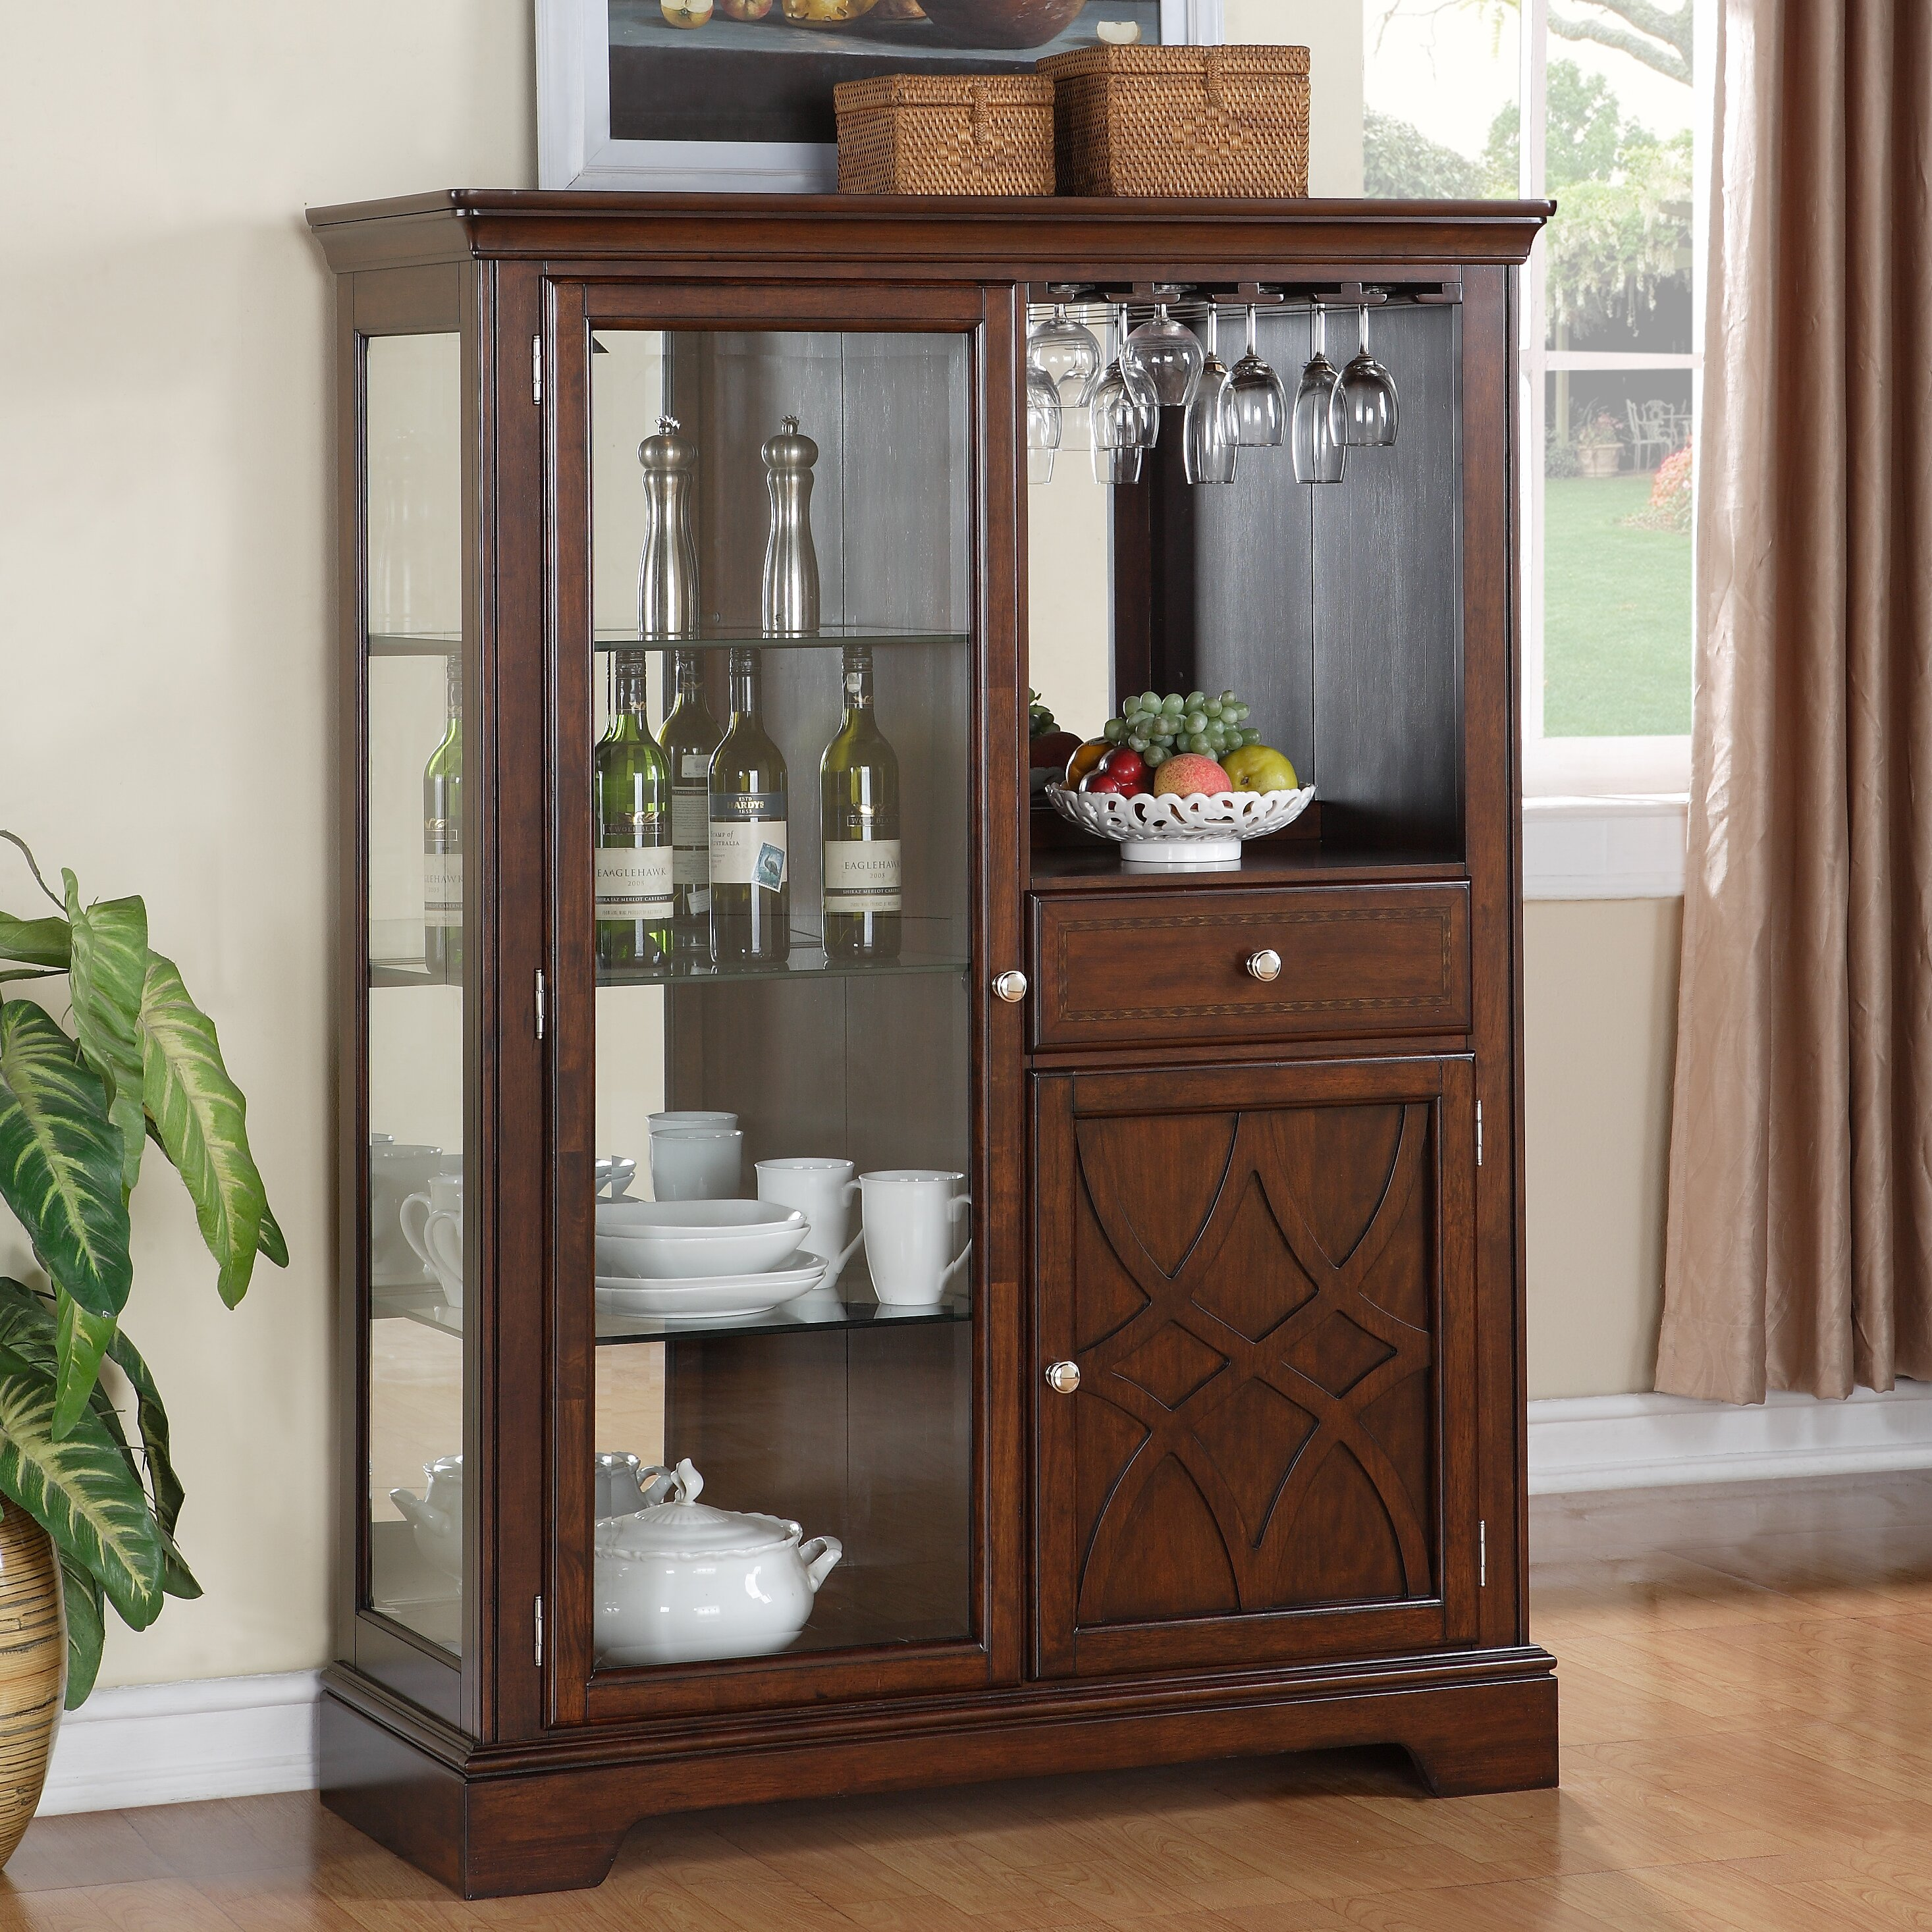 Clearance Cabinets: Darby Home Co Norden Curio Cabinet & Reviews